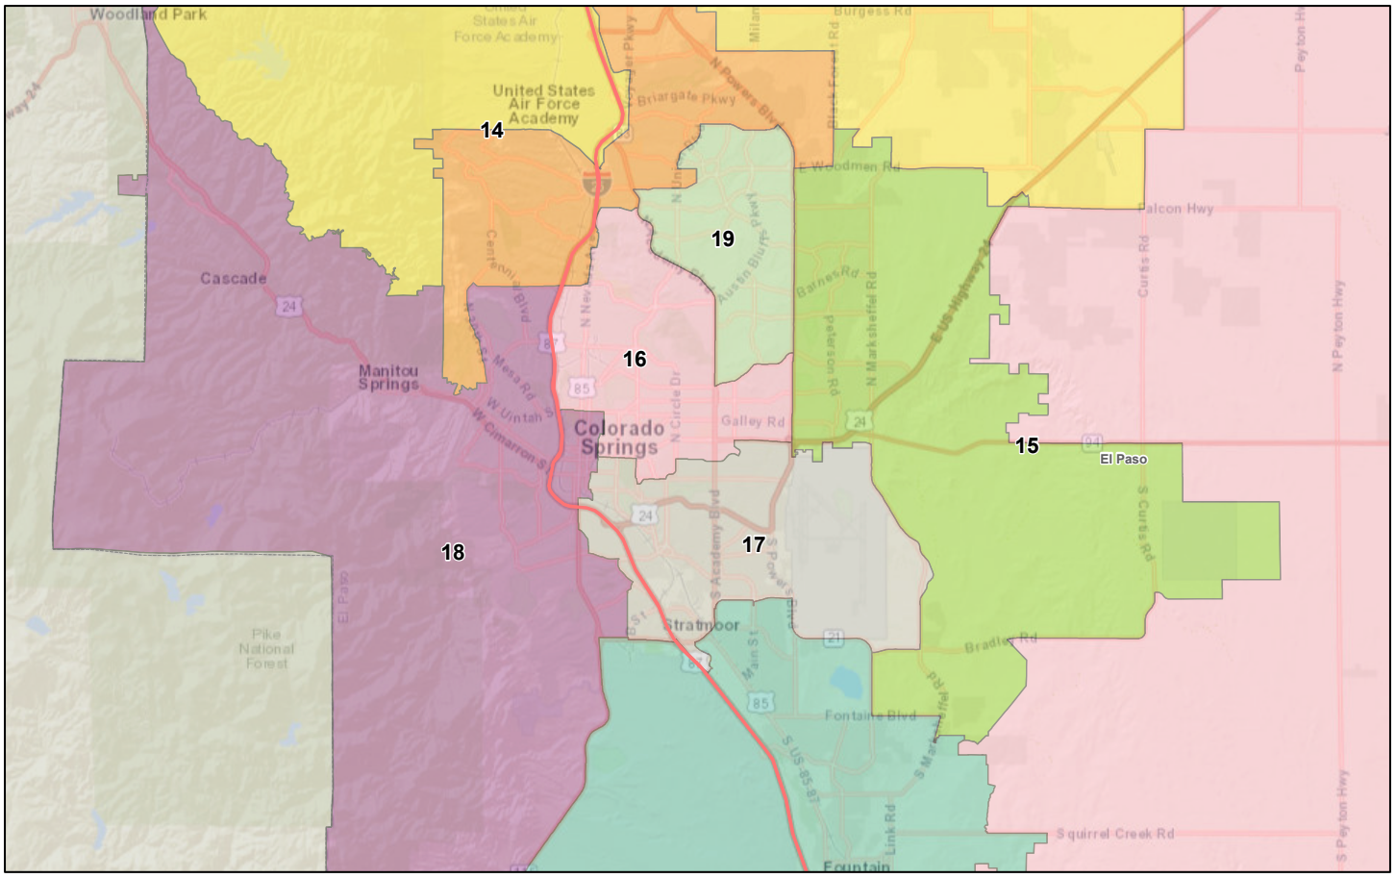 Final adopted state House redistricting plan - Colorado Springs